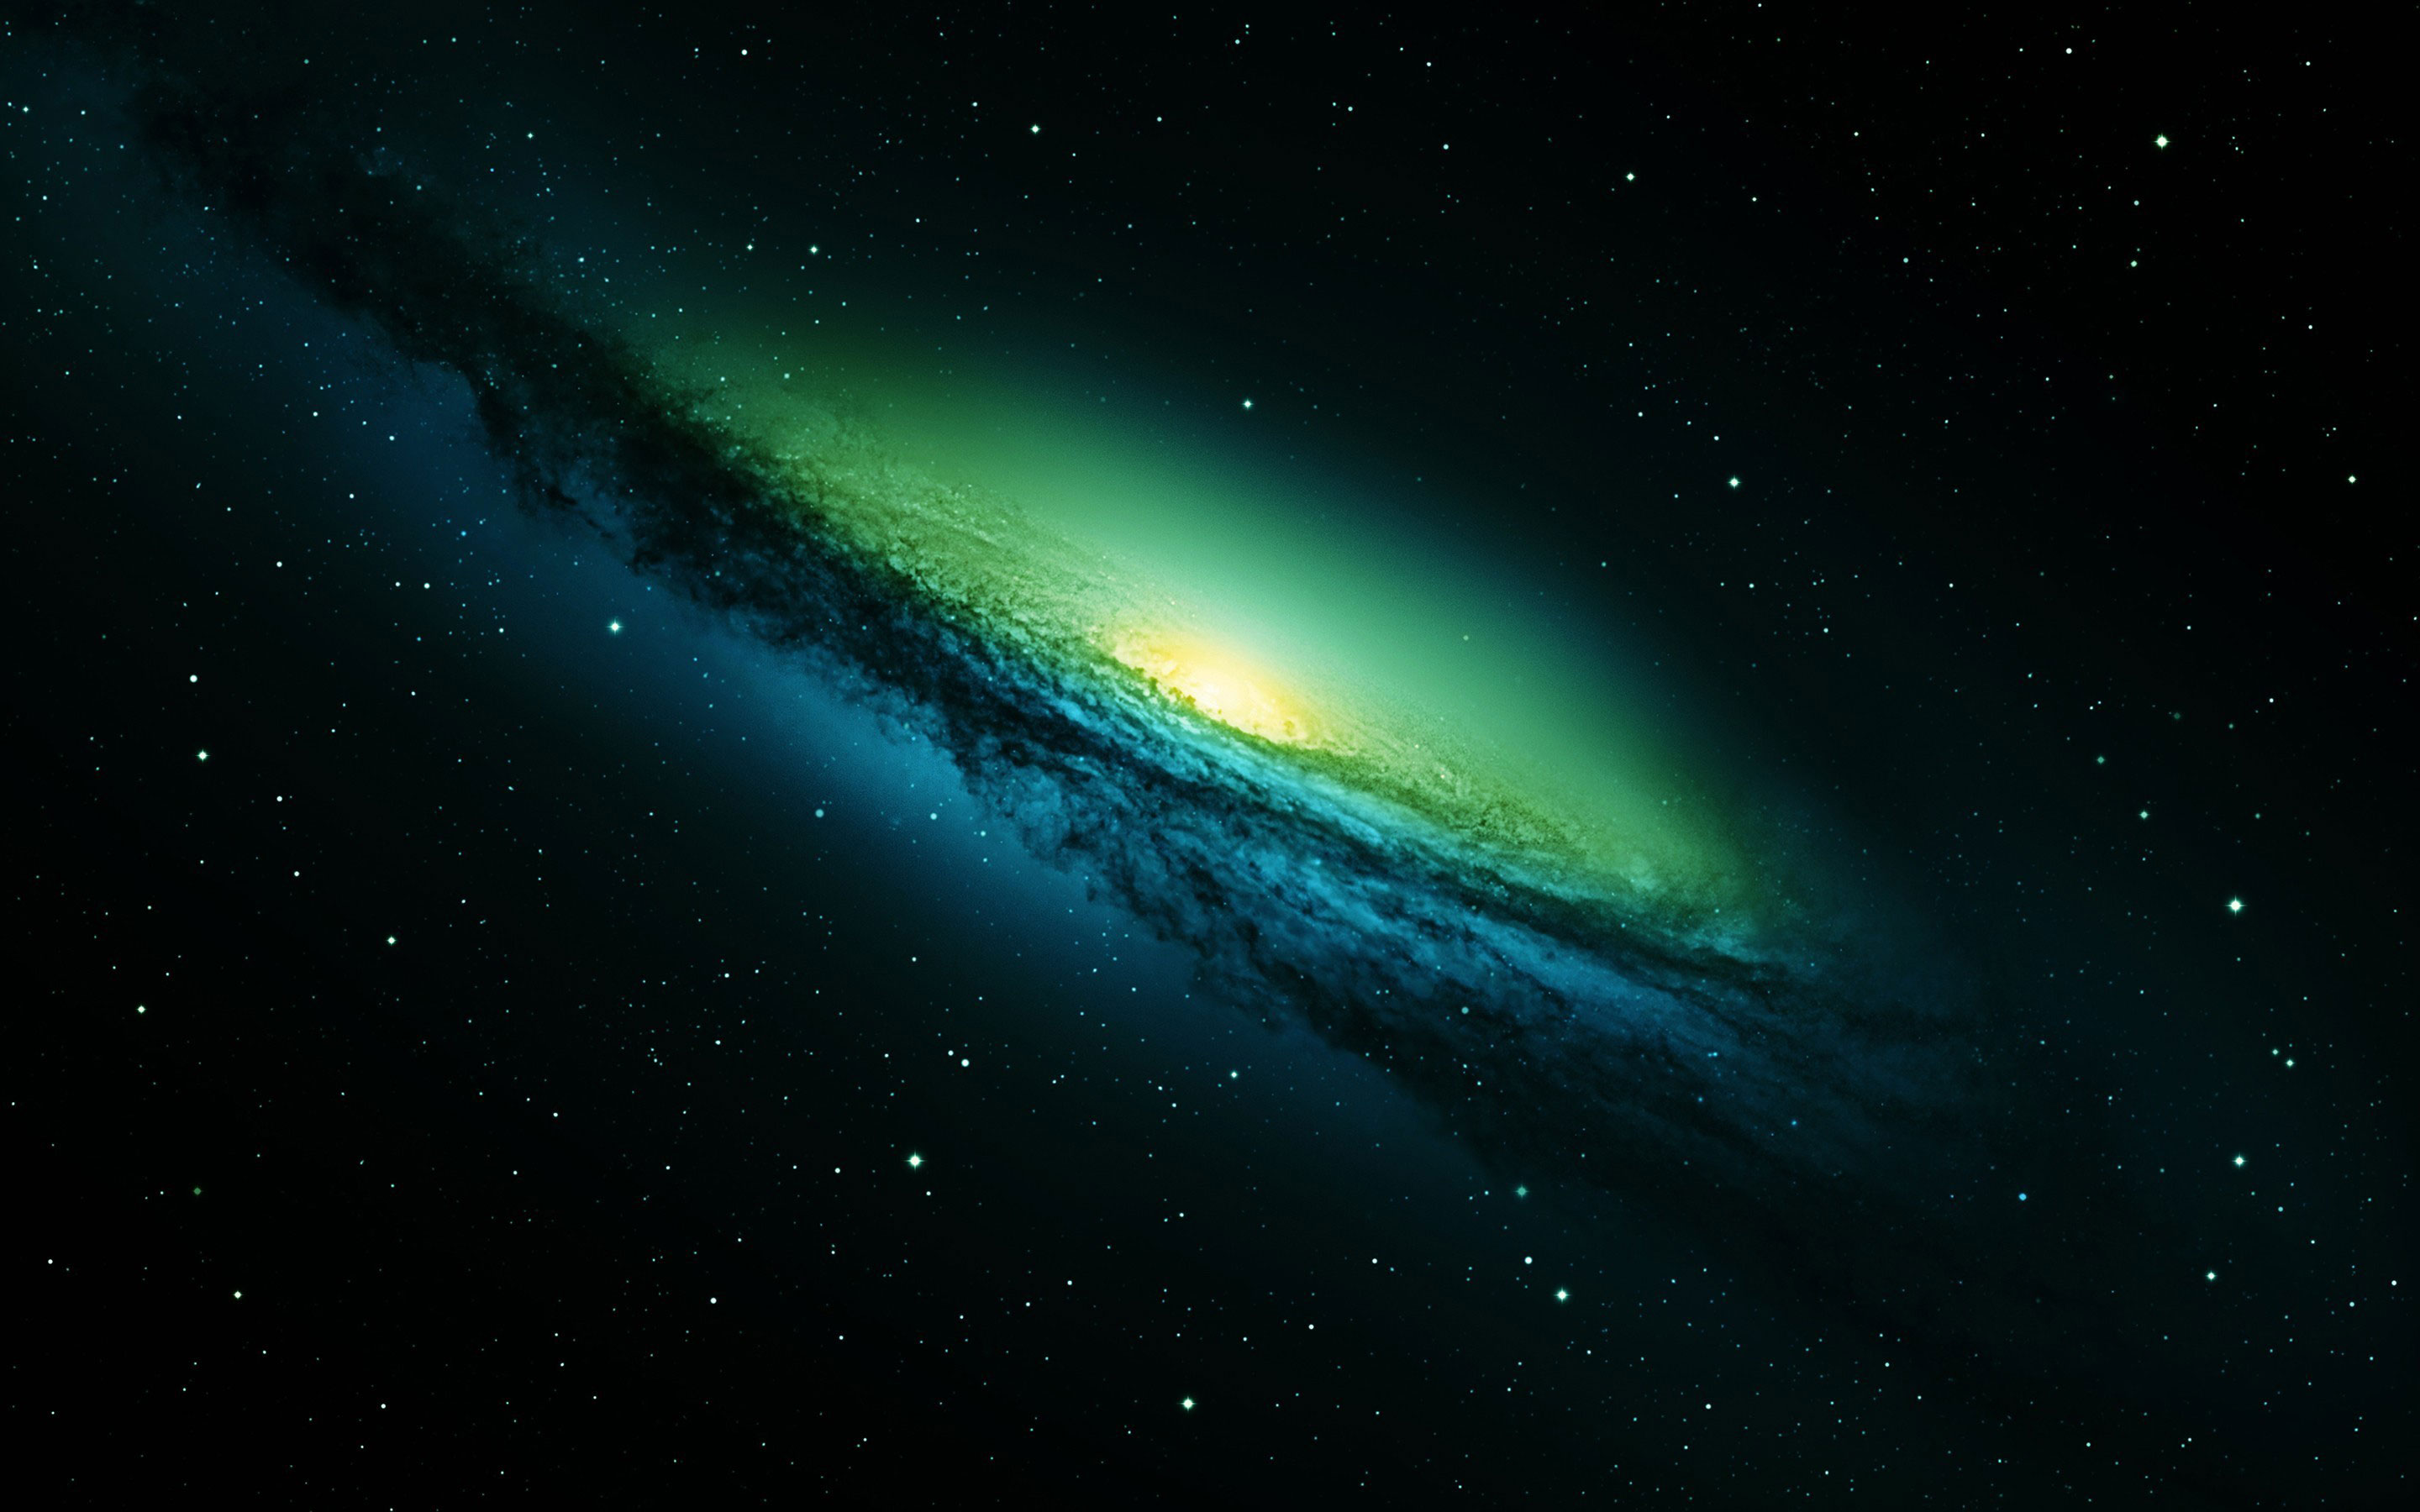 galaxy wallpaper 4